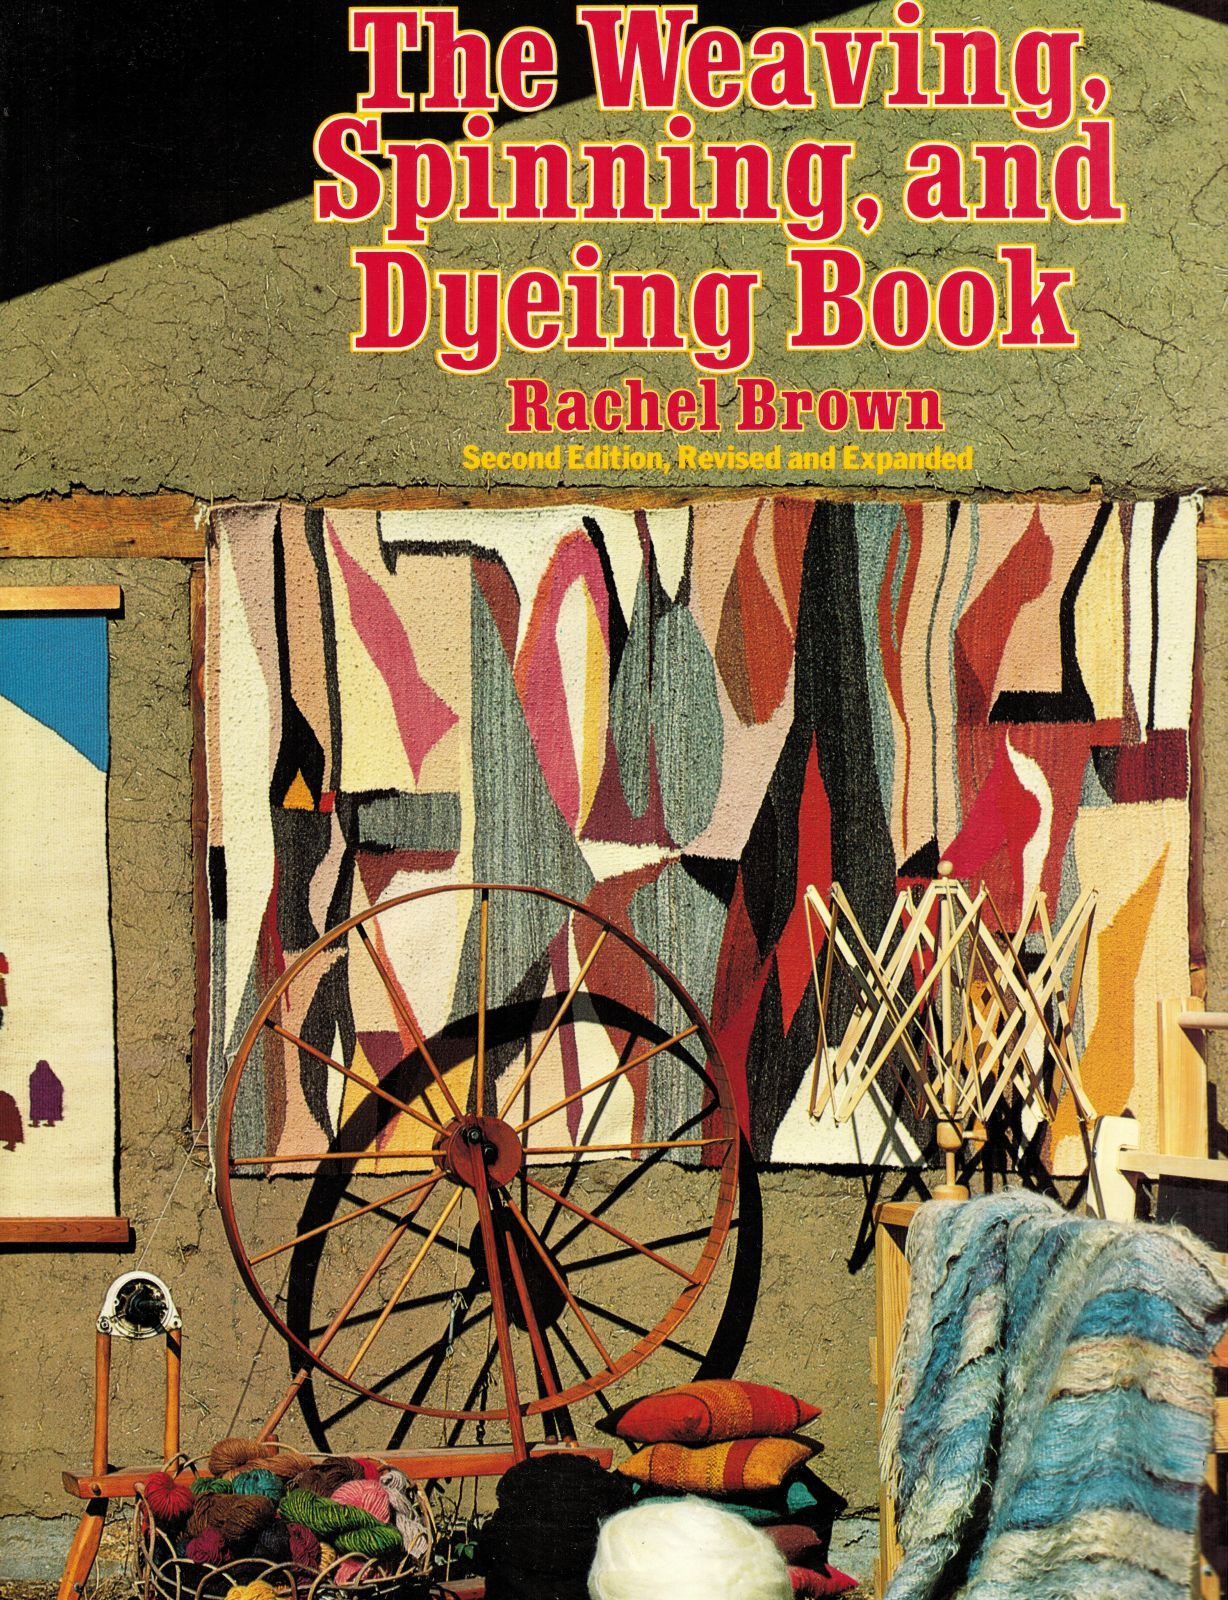 1997 The Weaving Spinning Dyeing 432 Drawings Rachel Brown Book  - $16.99